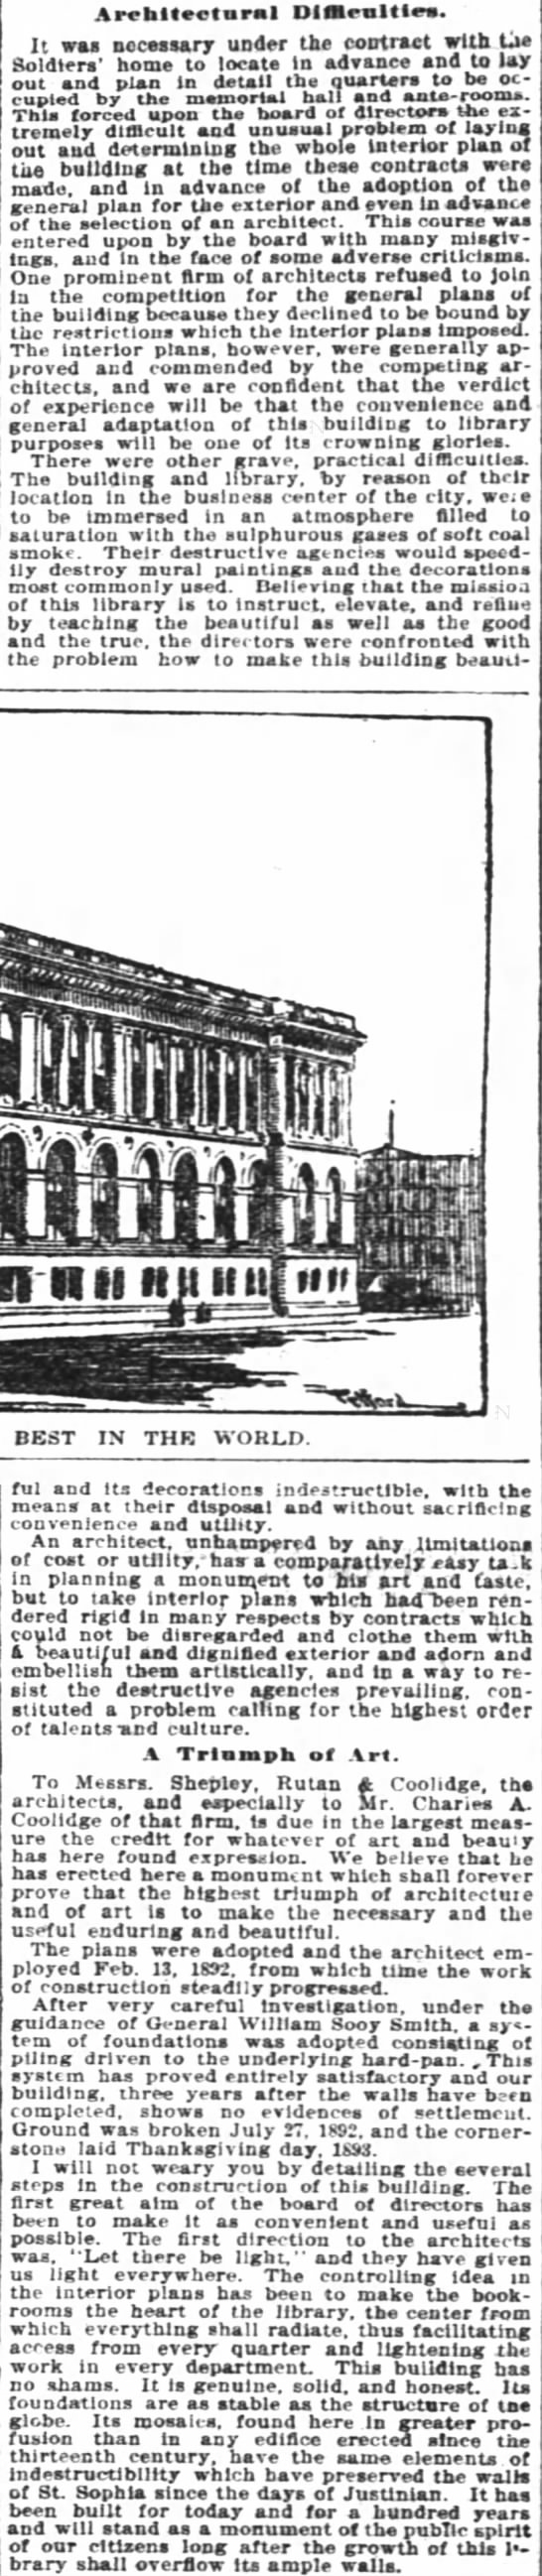 Architechtural Difficulties